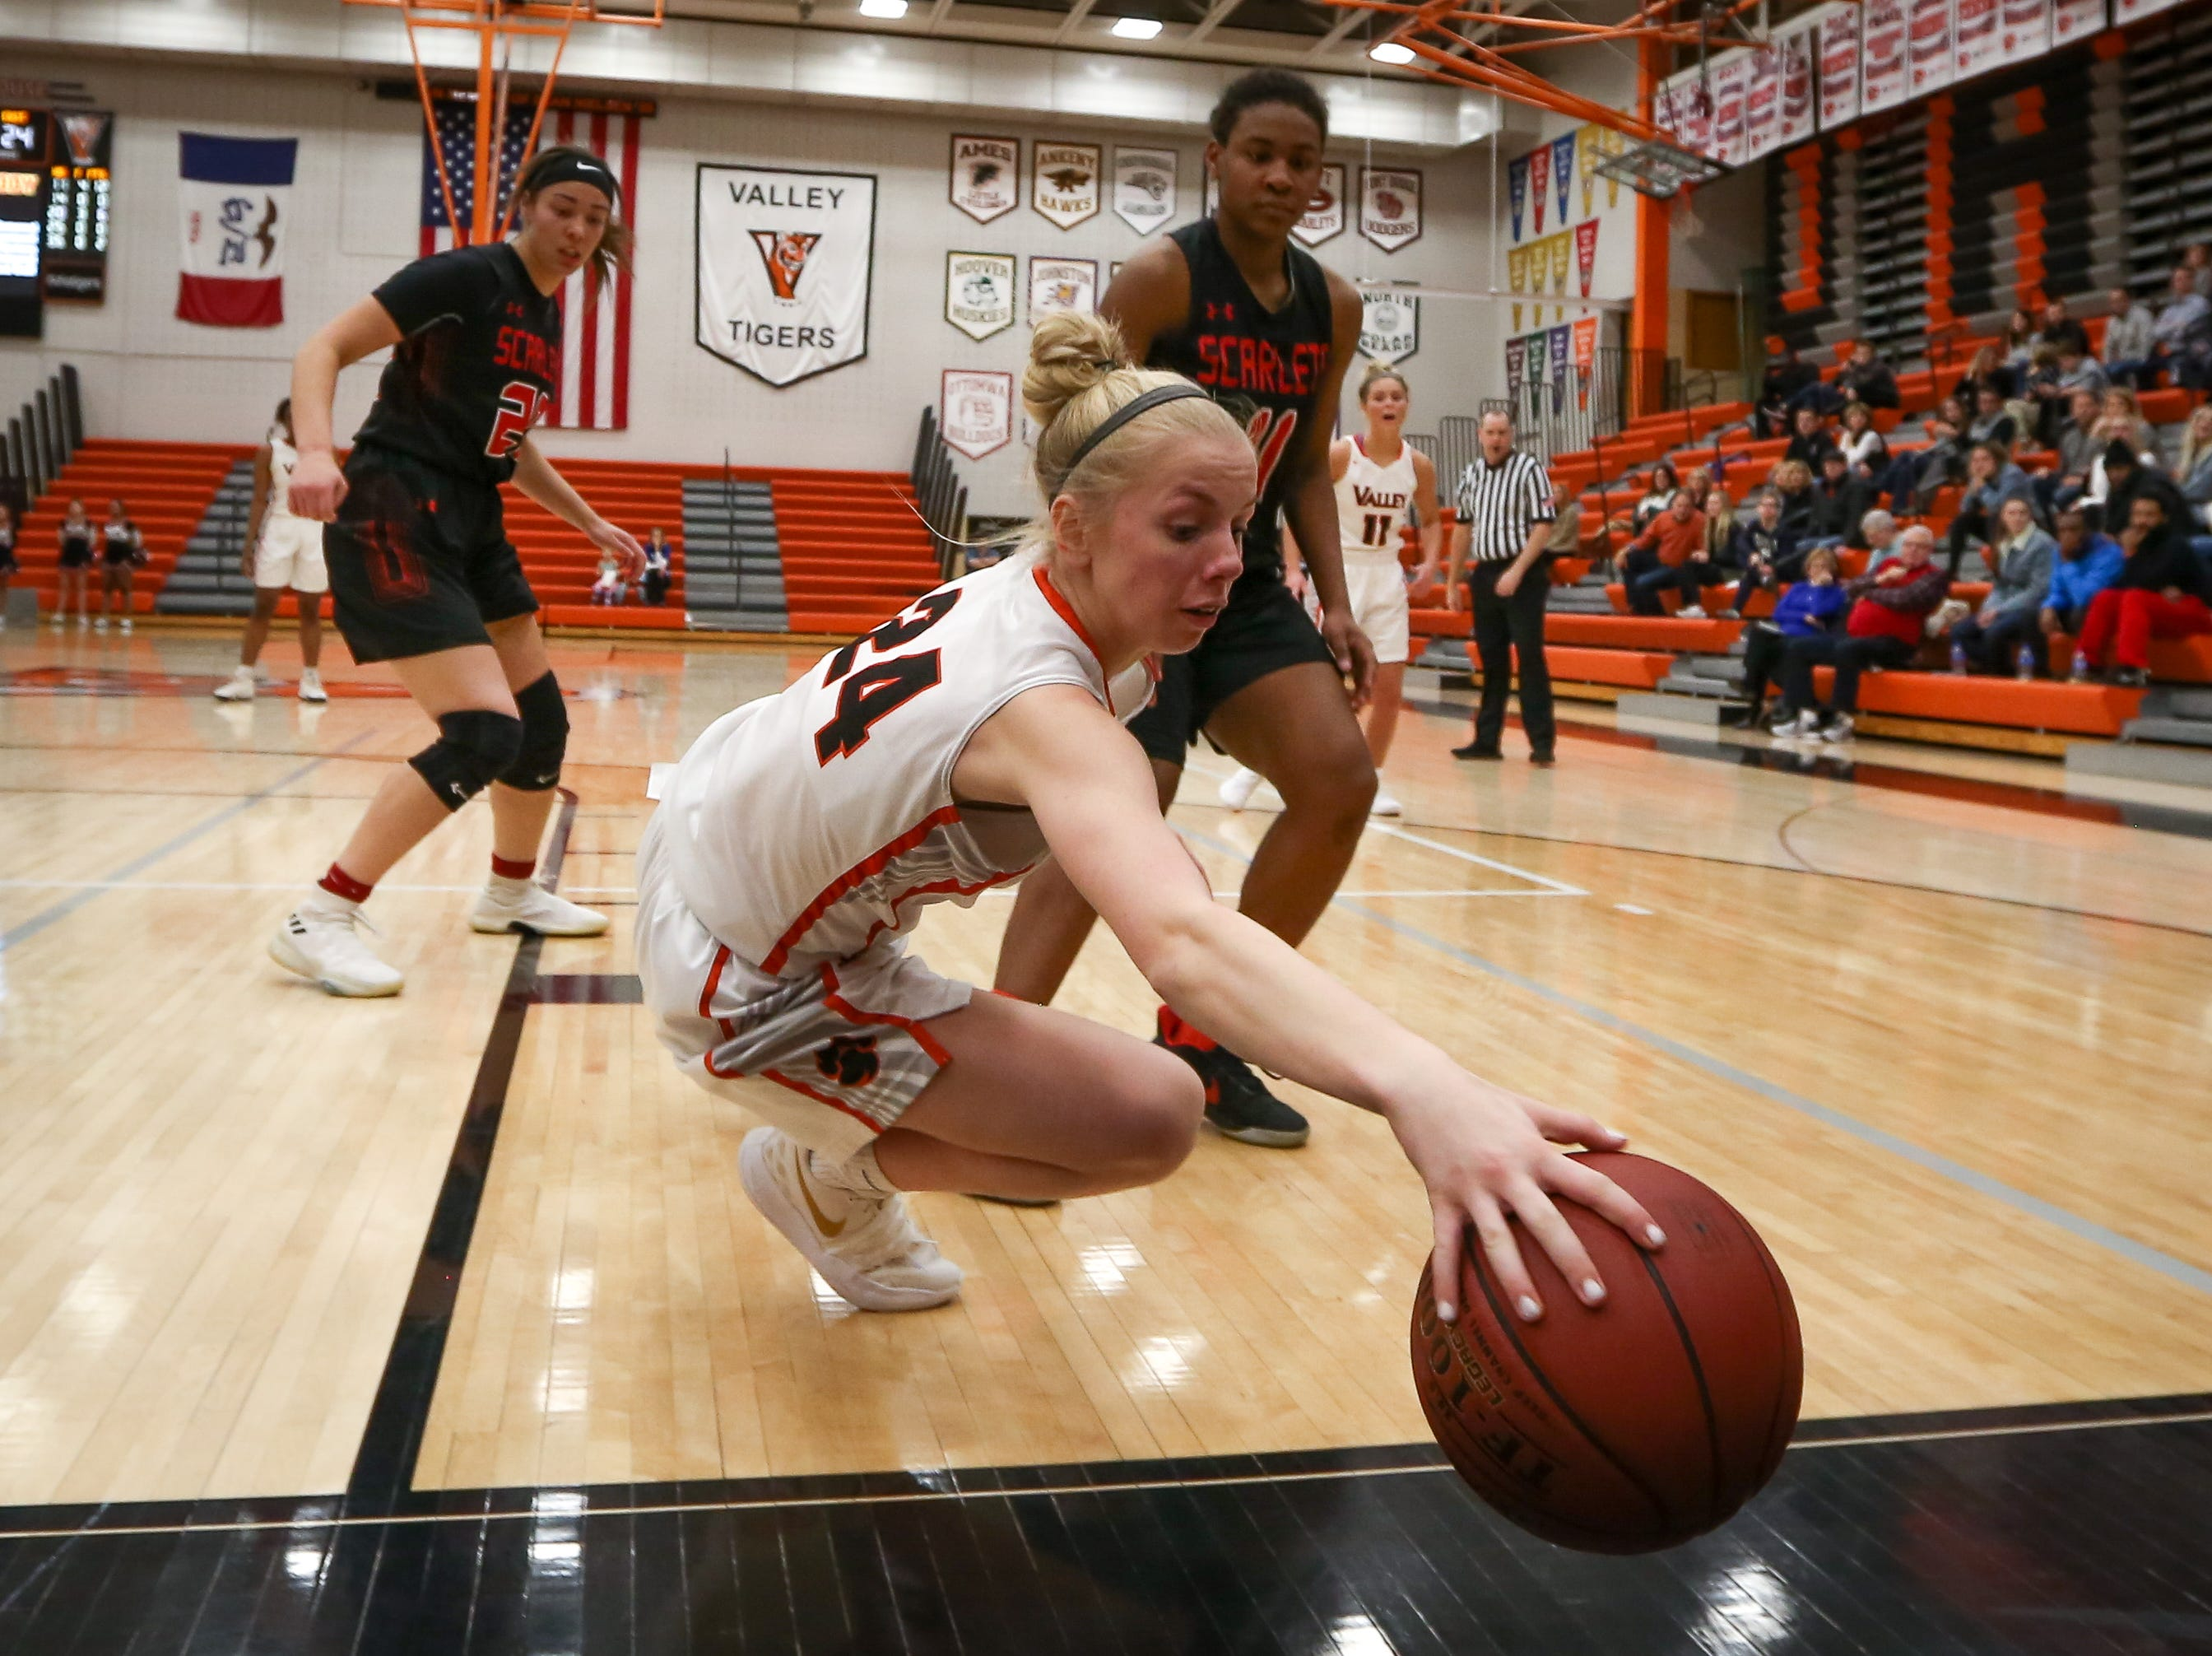 Valley freshman Meredith Rieker dives for the ball during a girls high school basketball game between the East Scarlets and the Valley Tigers at Coldiron Fieldhouse at Valley High School on Jan. 8, 2019 in West Des Moines, Iowa.